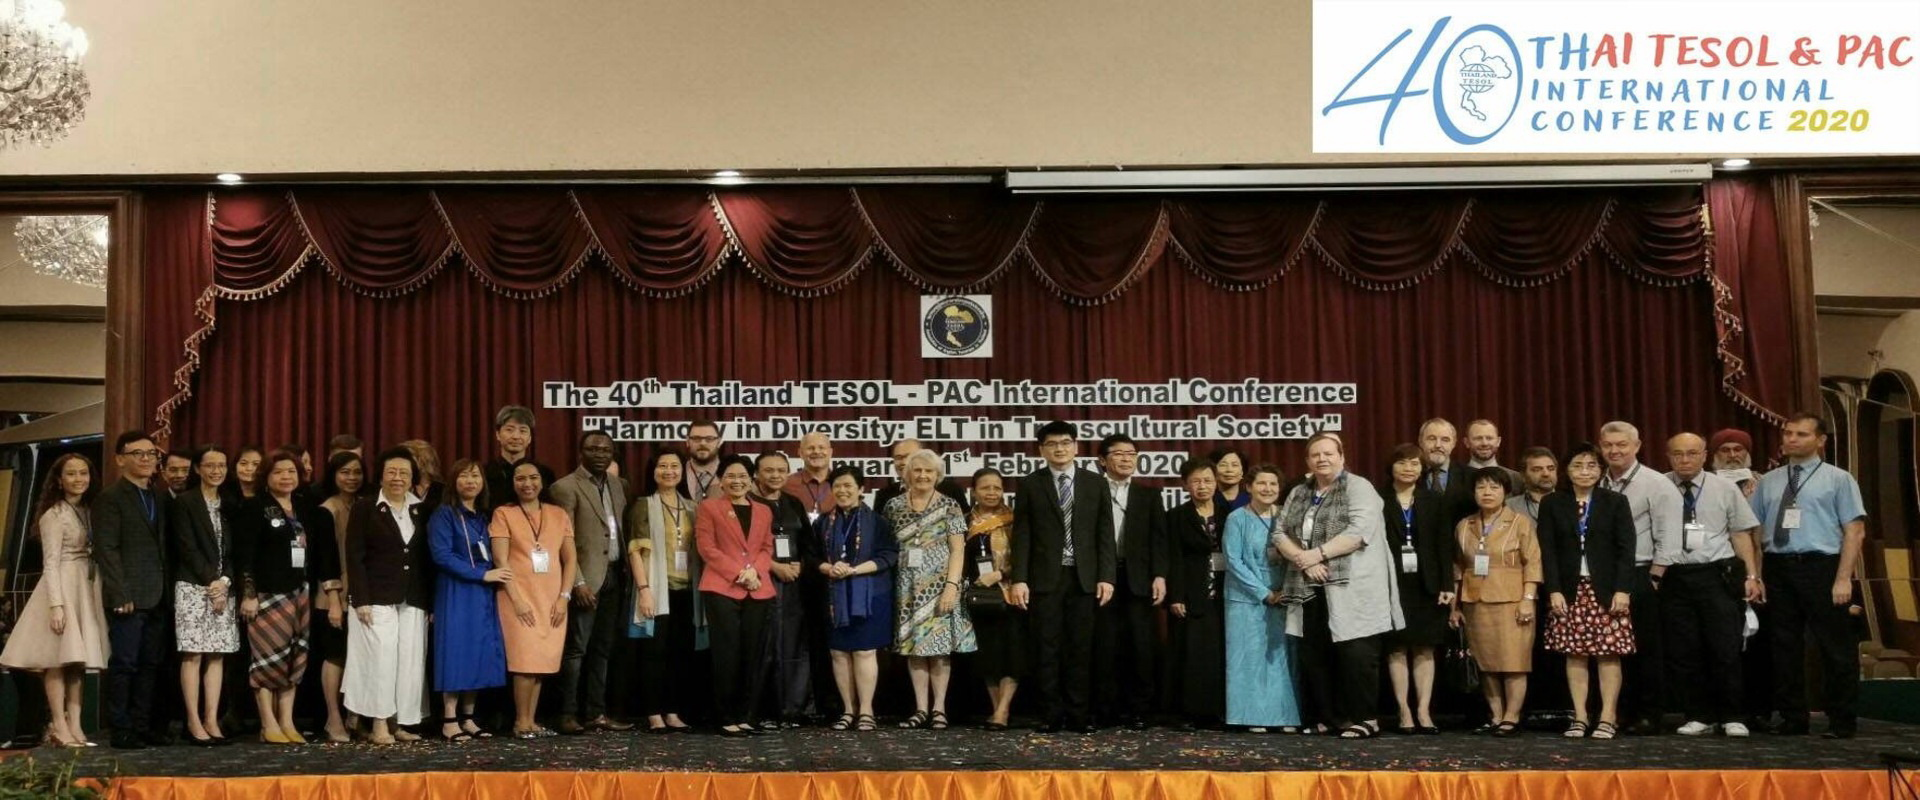 40th Thailand TESOL and PAC International Conference